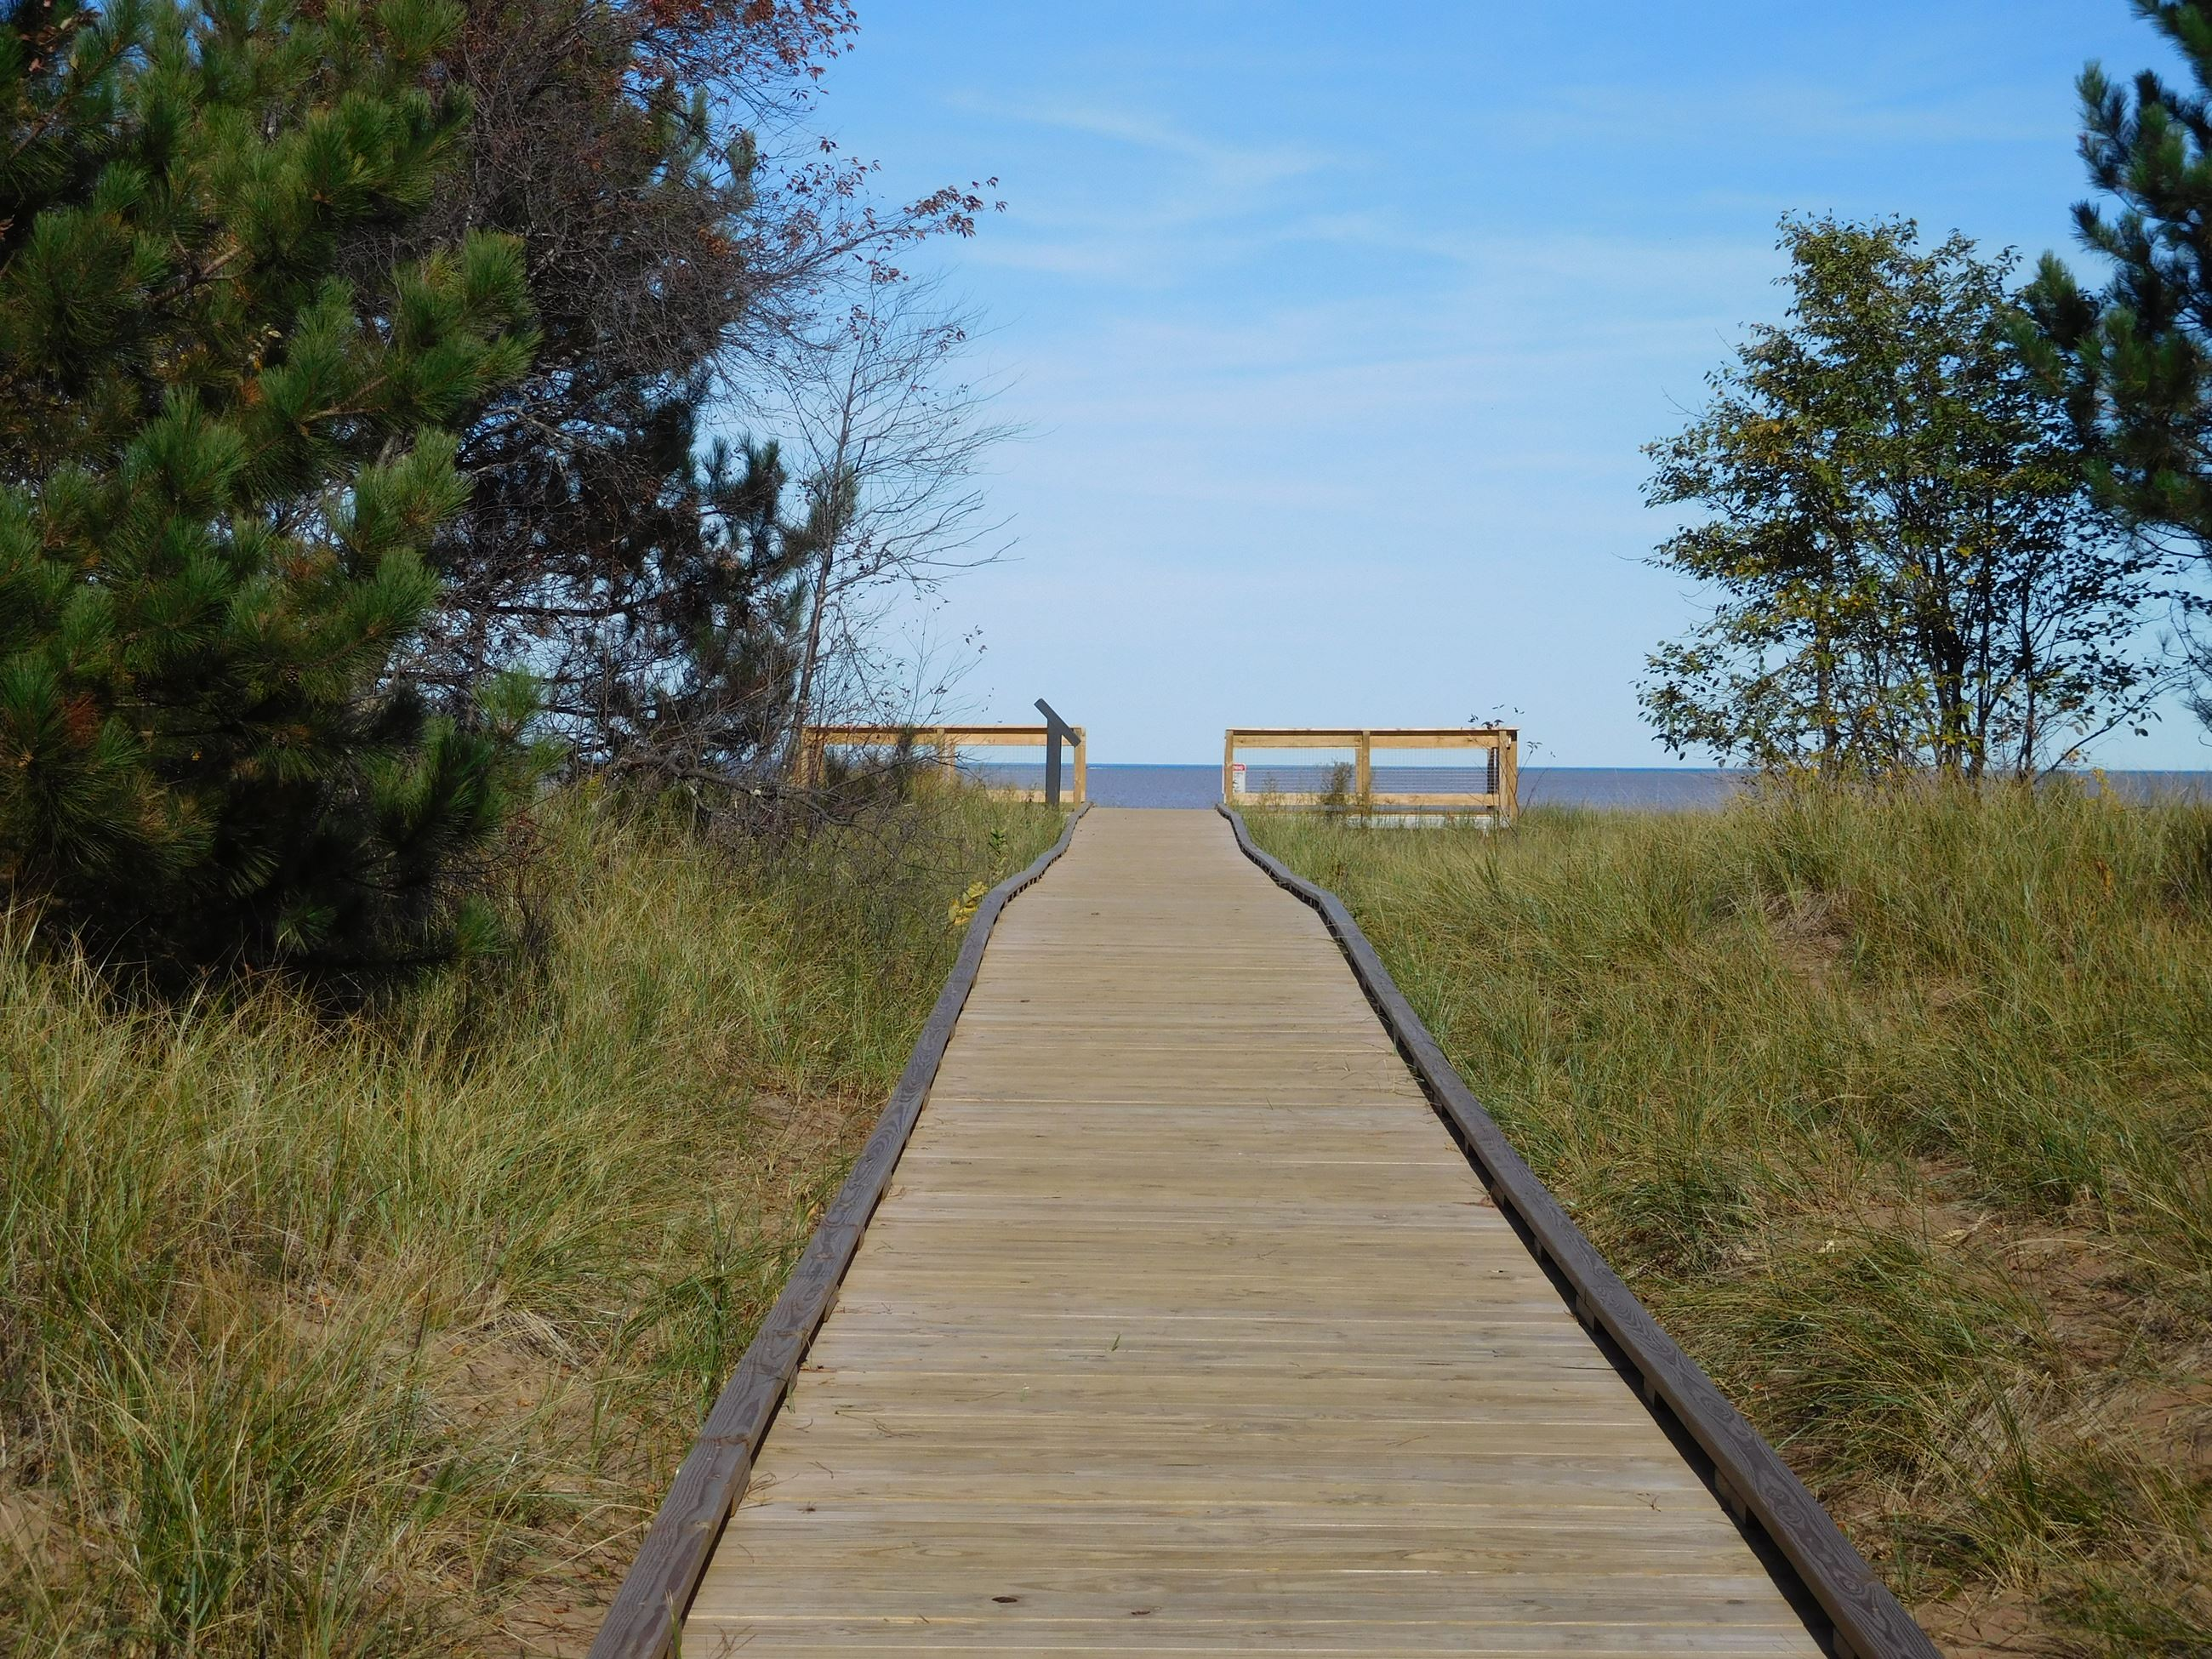 board walk leading up to viewing deck with Lake Superior on the horizon.